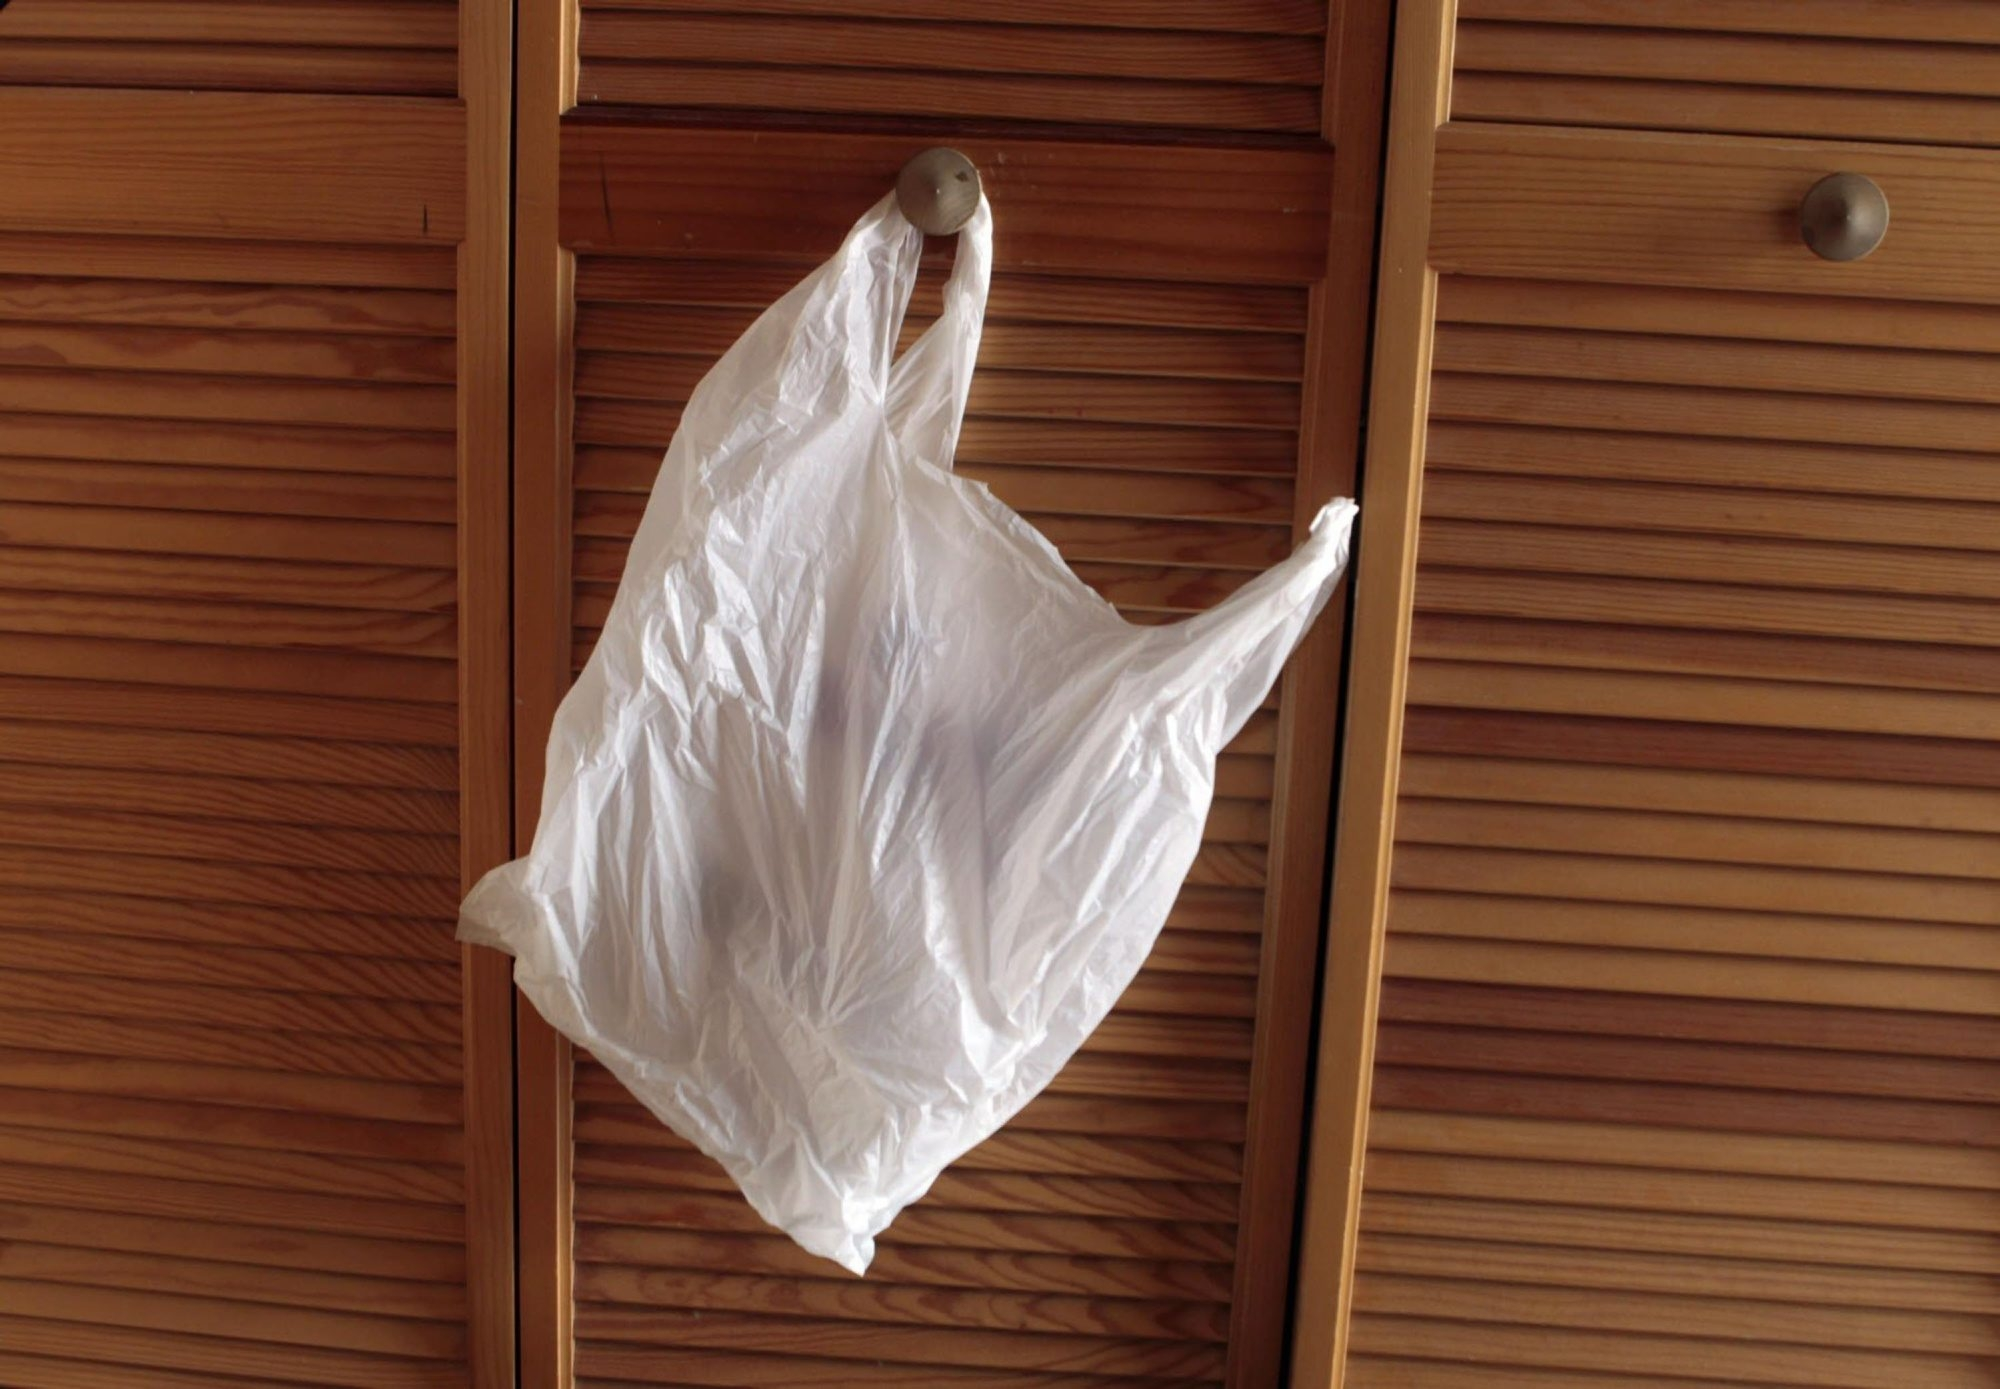 It's not a good idea to have your wastebasket hanging on a door. It makes it hard to keep your hands clean when throwing things away. (Rick Wood/Milwaukee Journal Sentinel/MCT)